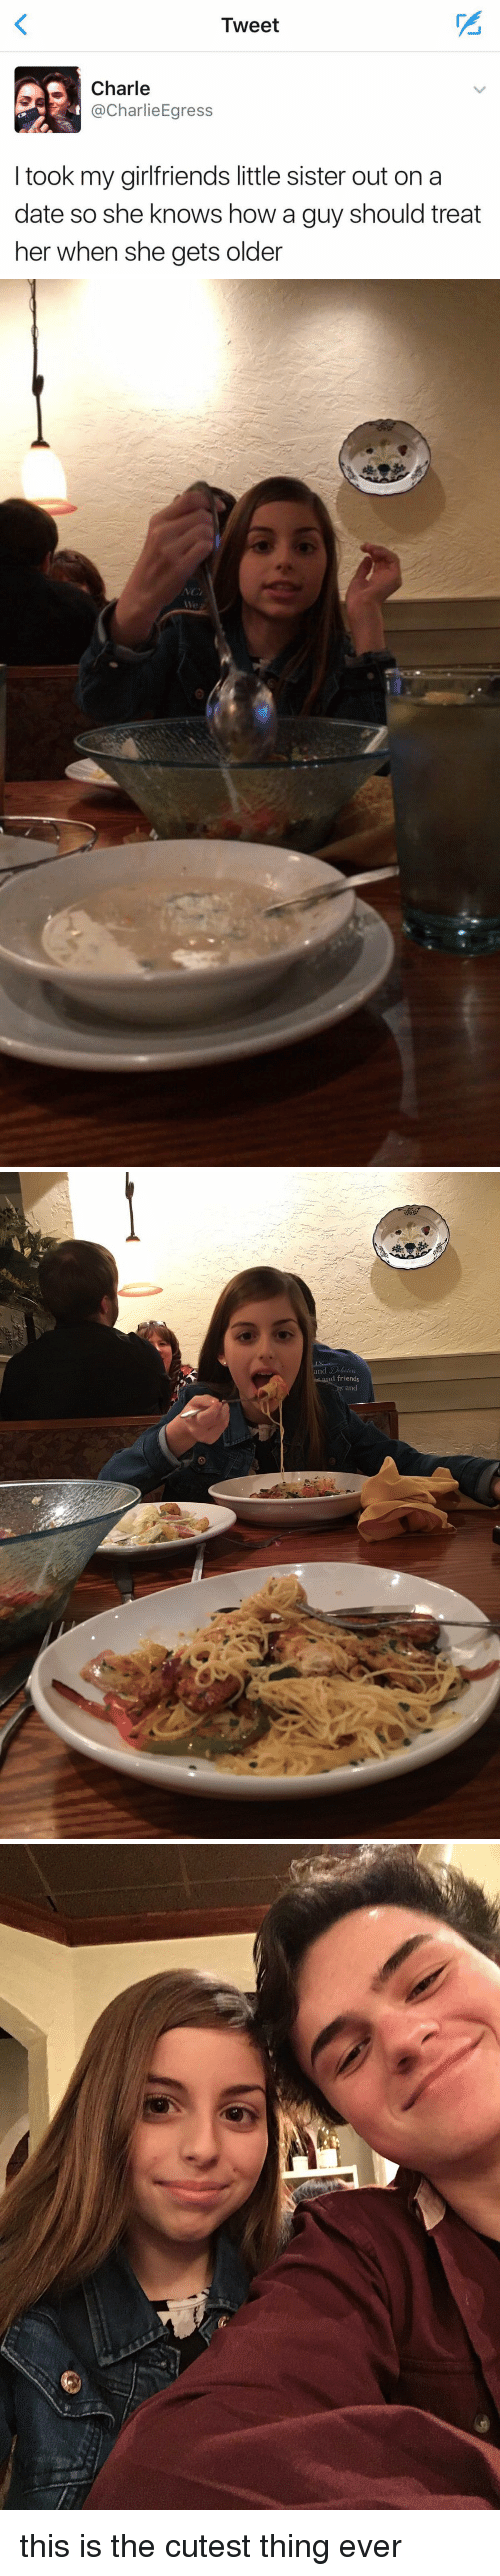 Dating, Friends, and She Knows: Tweet  AS Charle  harlie Egress  took my girlfriends little sister out on a  date so she knows how a guy should treat  her when she gets older   and Debate  nd friends  and this is the cutest thing ever